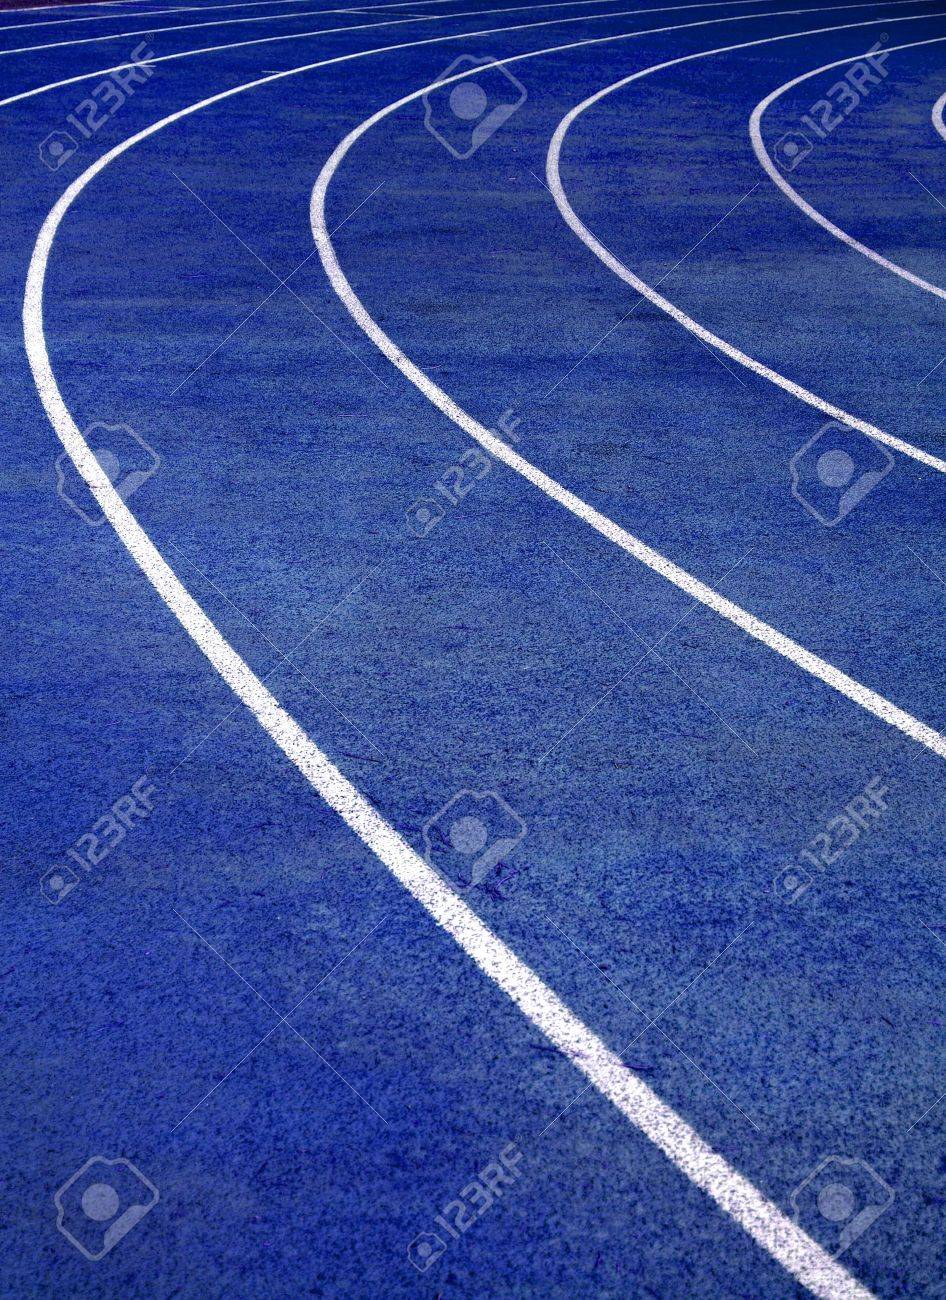 Lanes of blue running race